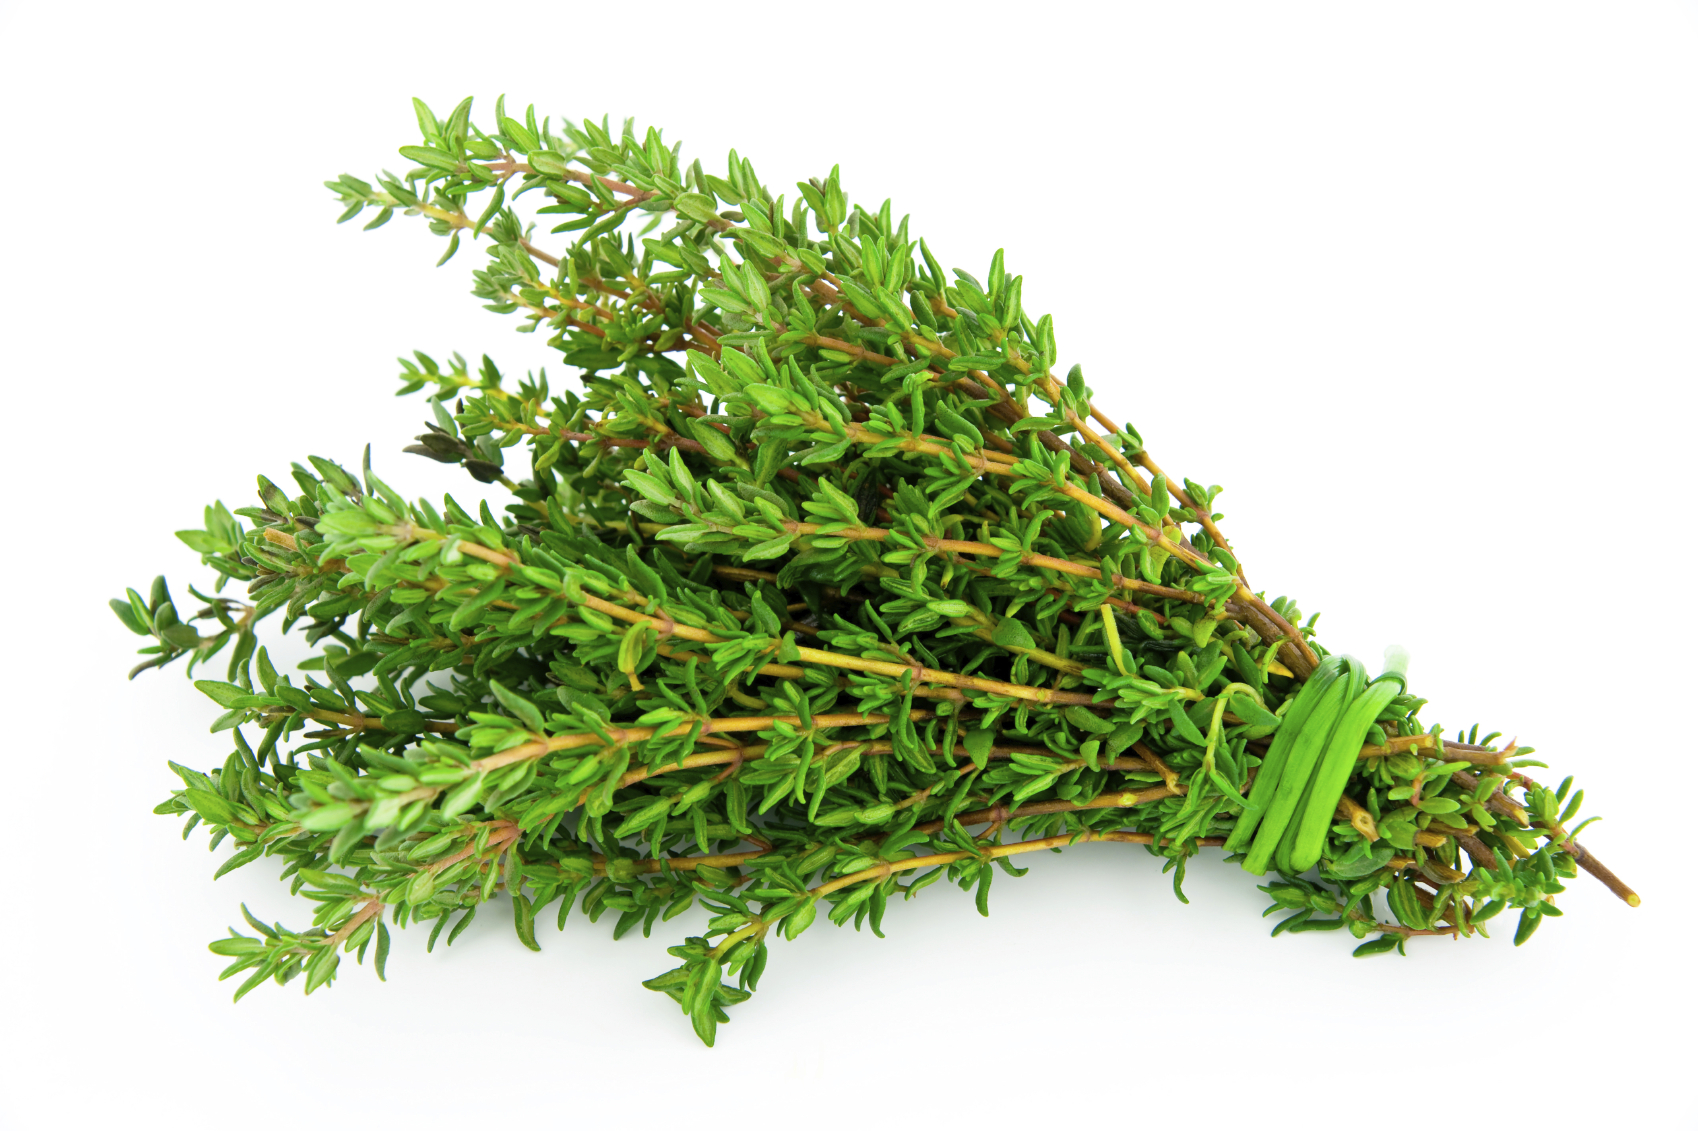 Thyme: Herb for Courage, Coughs, Purification, Pain Relief